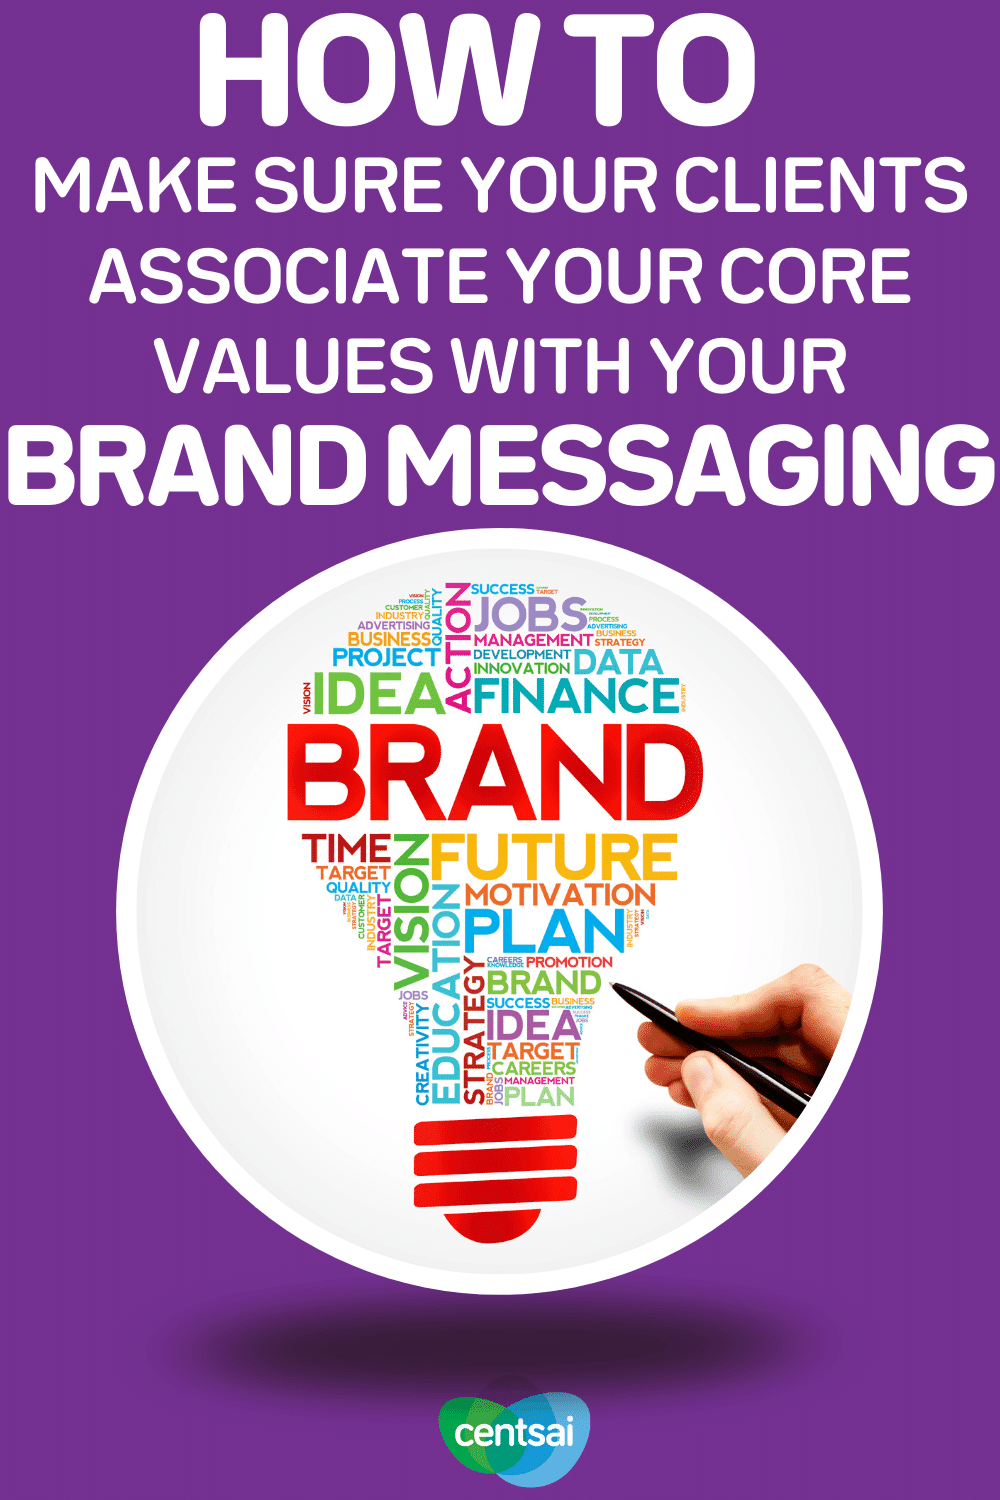 How to Make Sure Your Clients Associate Your Core Values With Your Brand Messaging